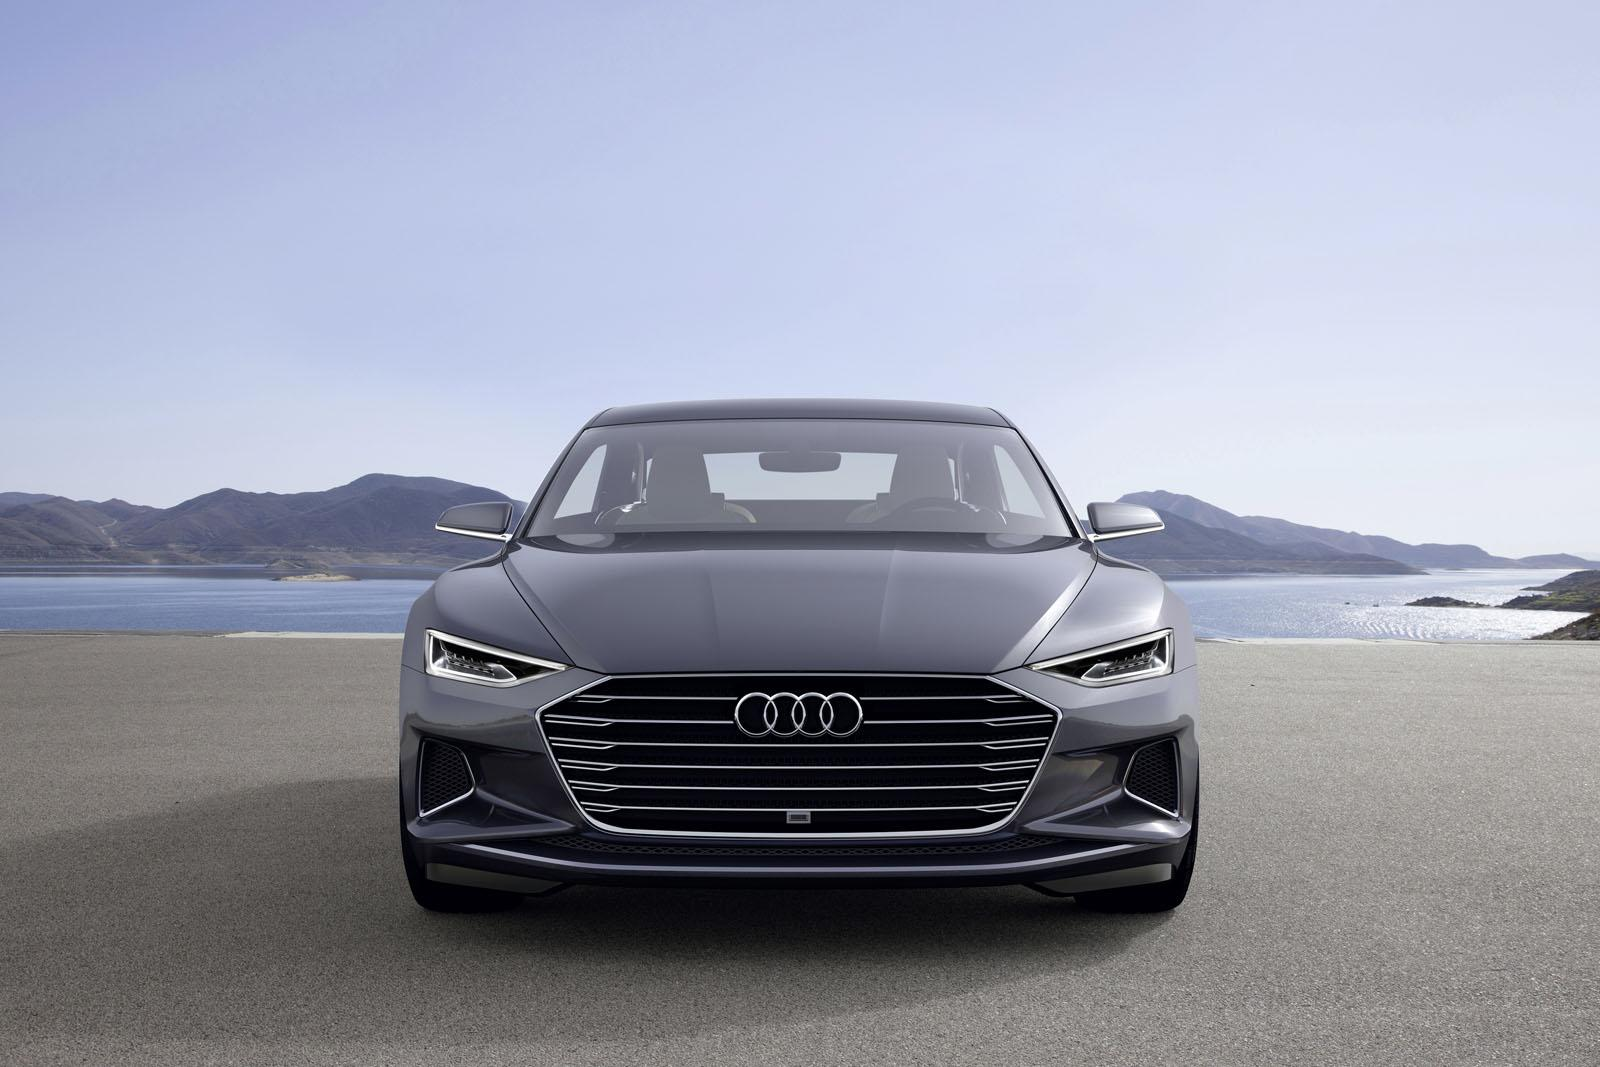 Audi Prologue Gets Hybrid V System And Piloted Driving Tech For - Audi official